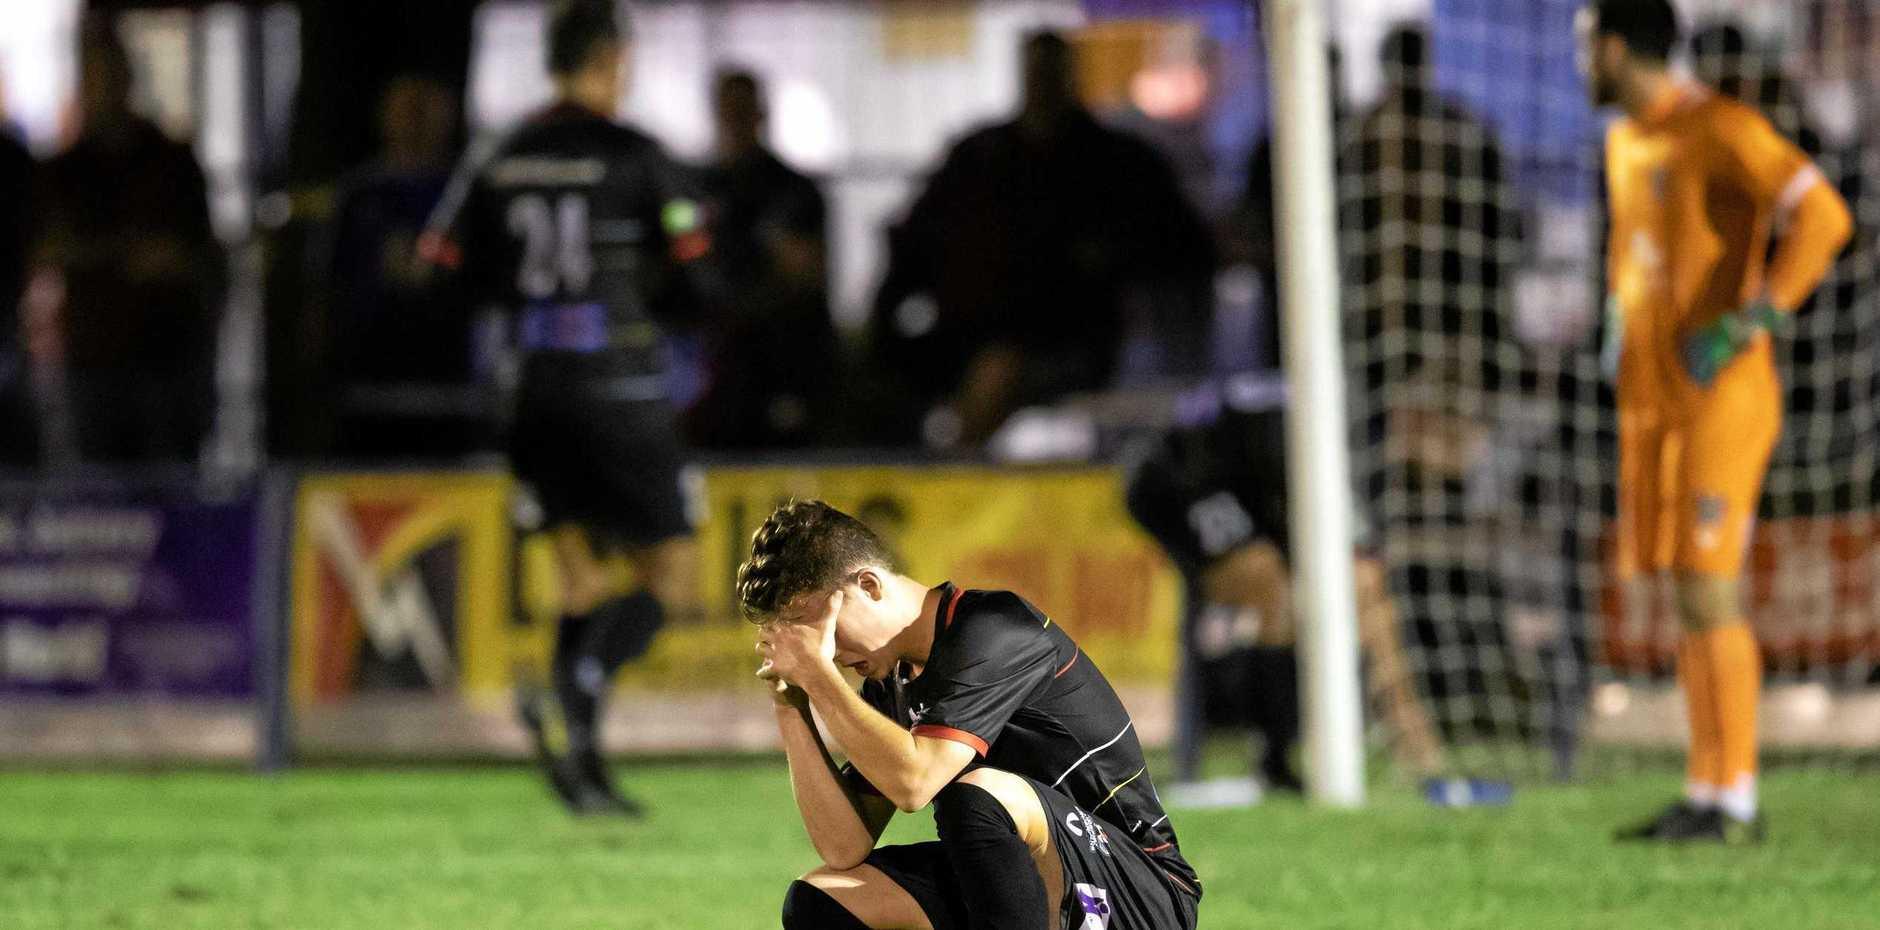 BROKEN: Magpies Crusaders were thoroughly dismantled by a clinical Brisbane Strikers, to the tune of 11 goals to nil, at Sologinkin Oval on Saturday night.